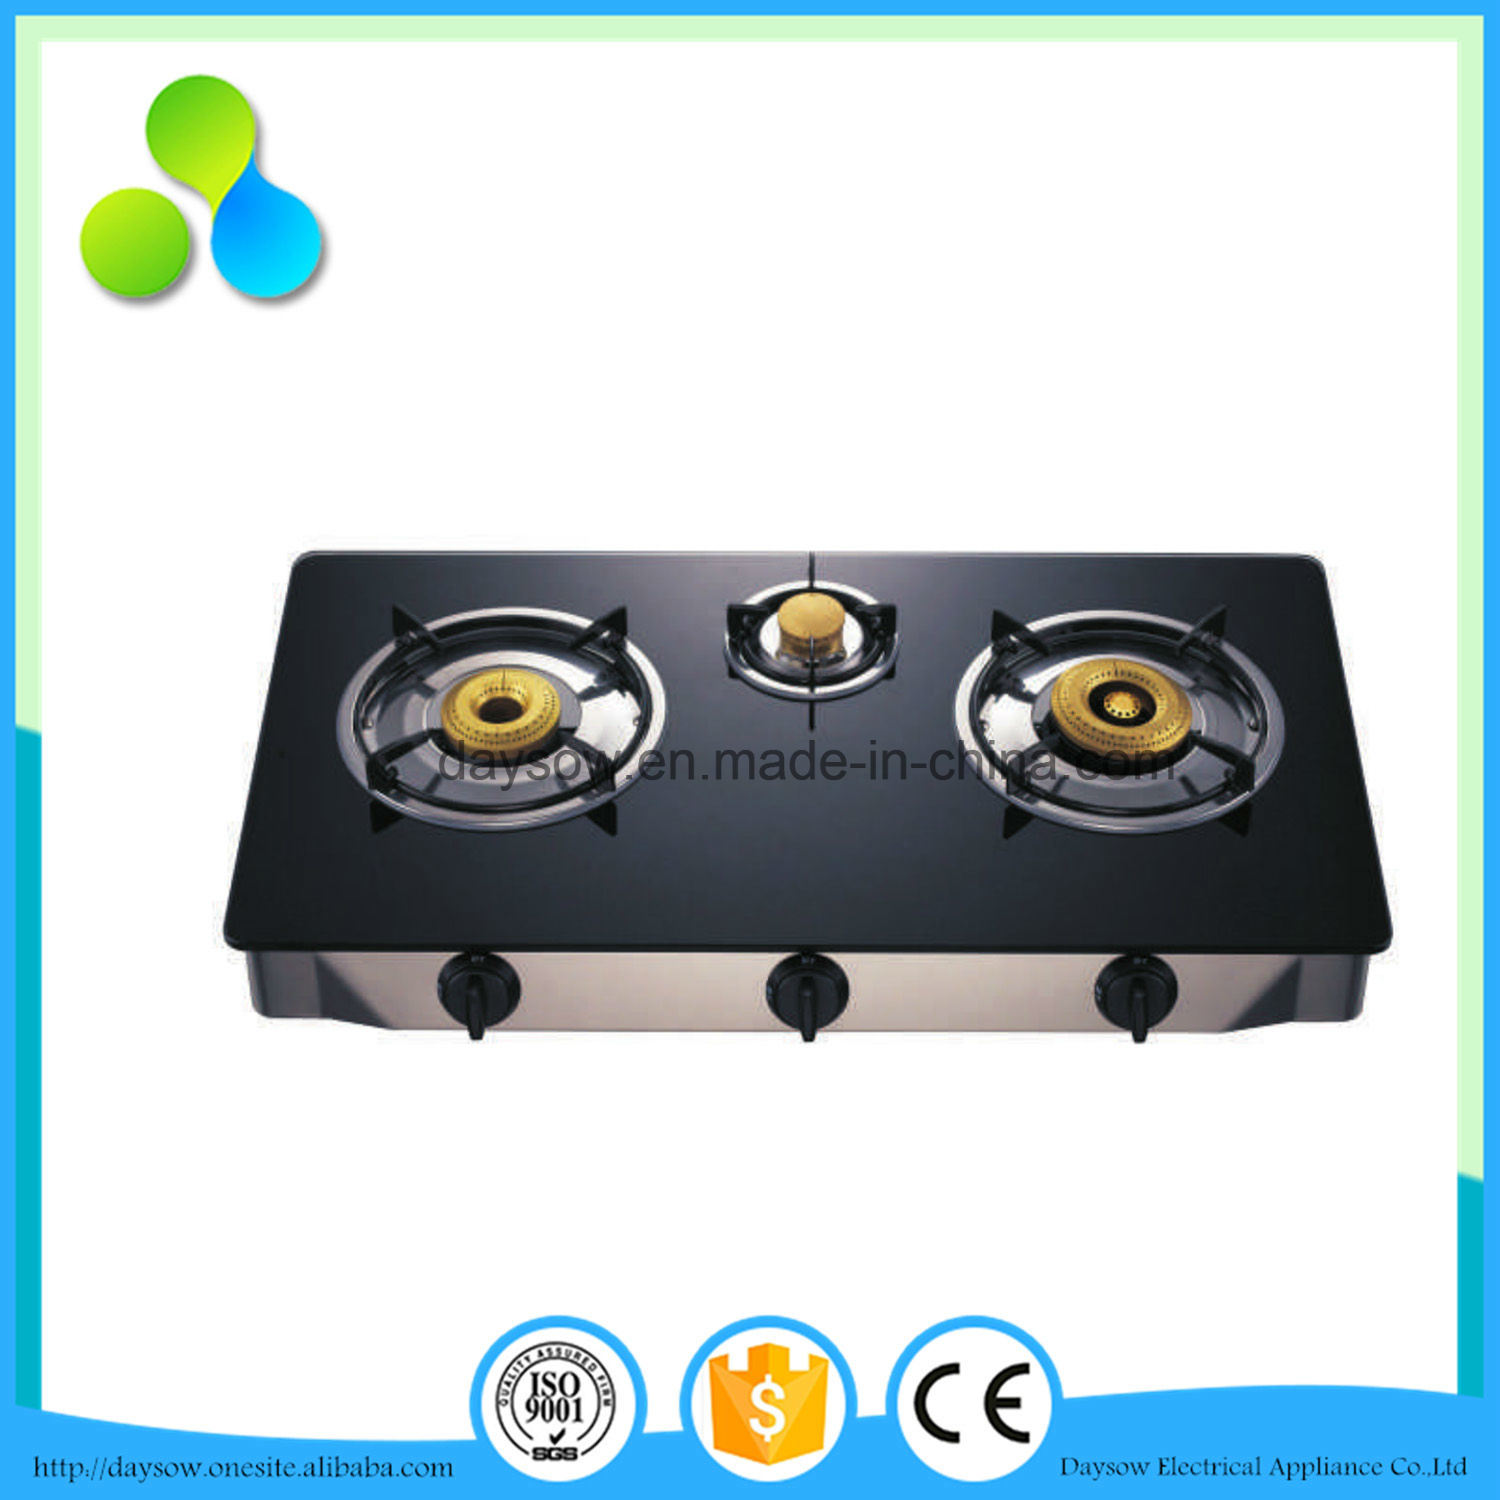 Low Price Pakistan 3 Burner Gas Stove